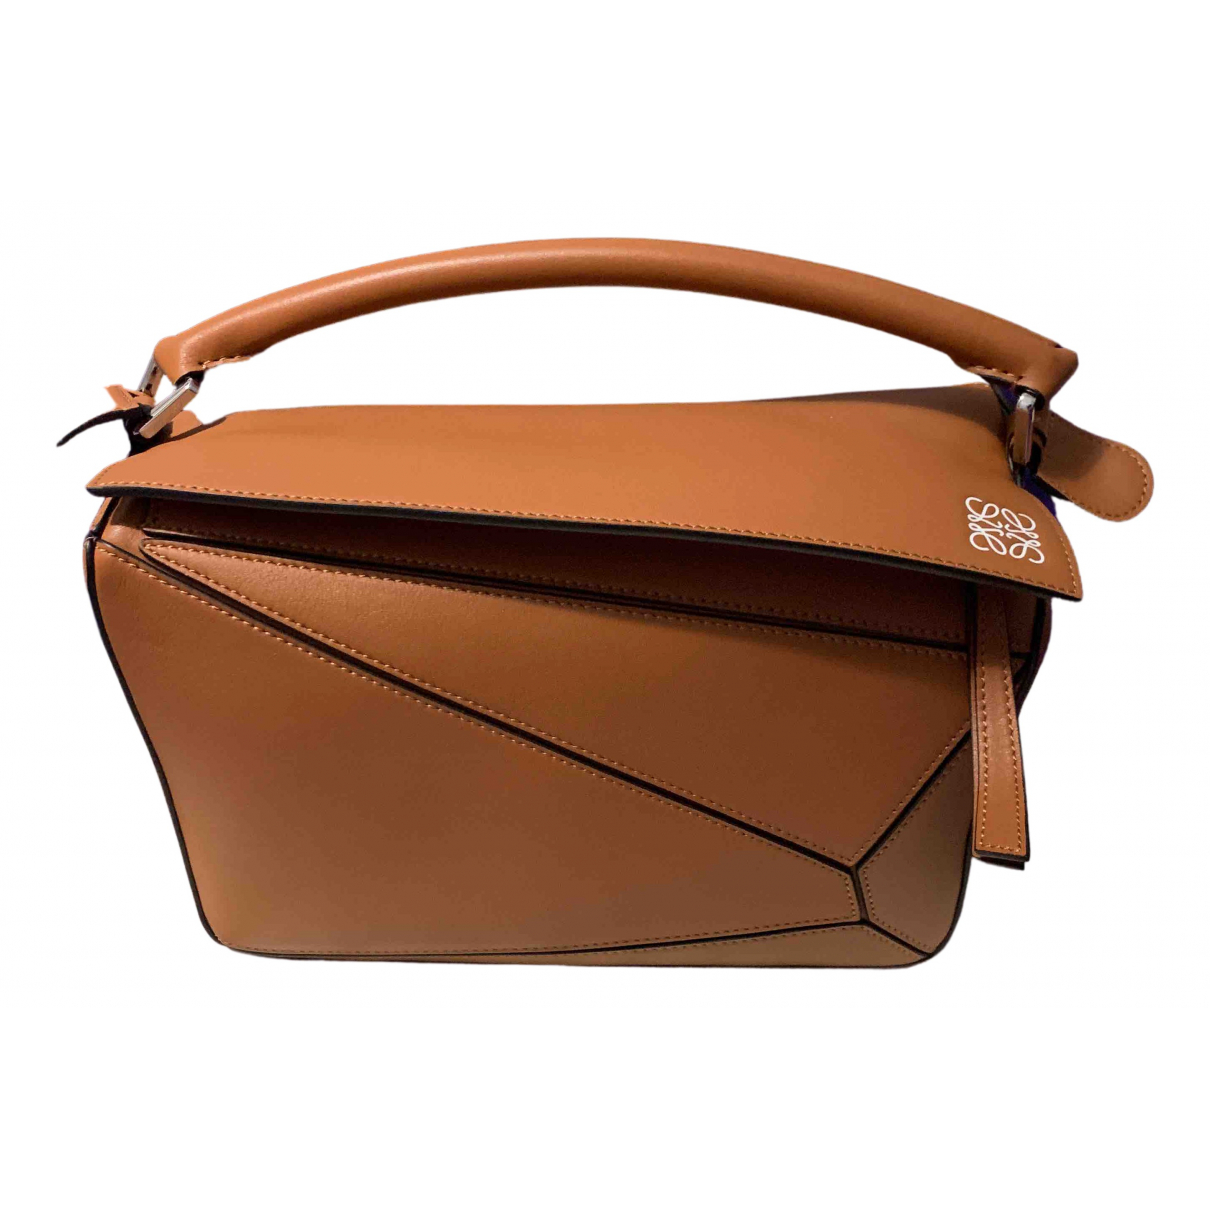 Loewe Puzzle  Camel Leather handbag for Women N